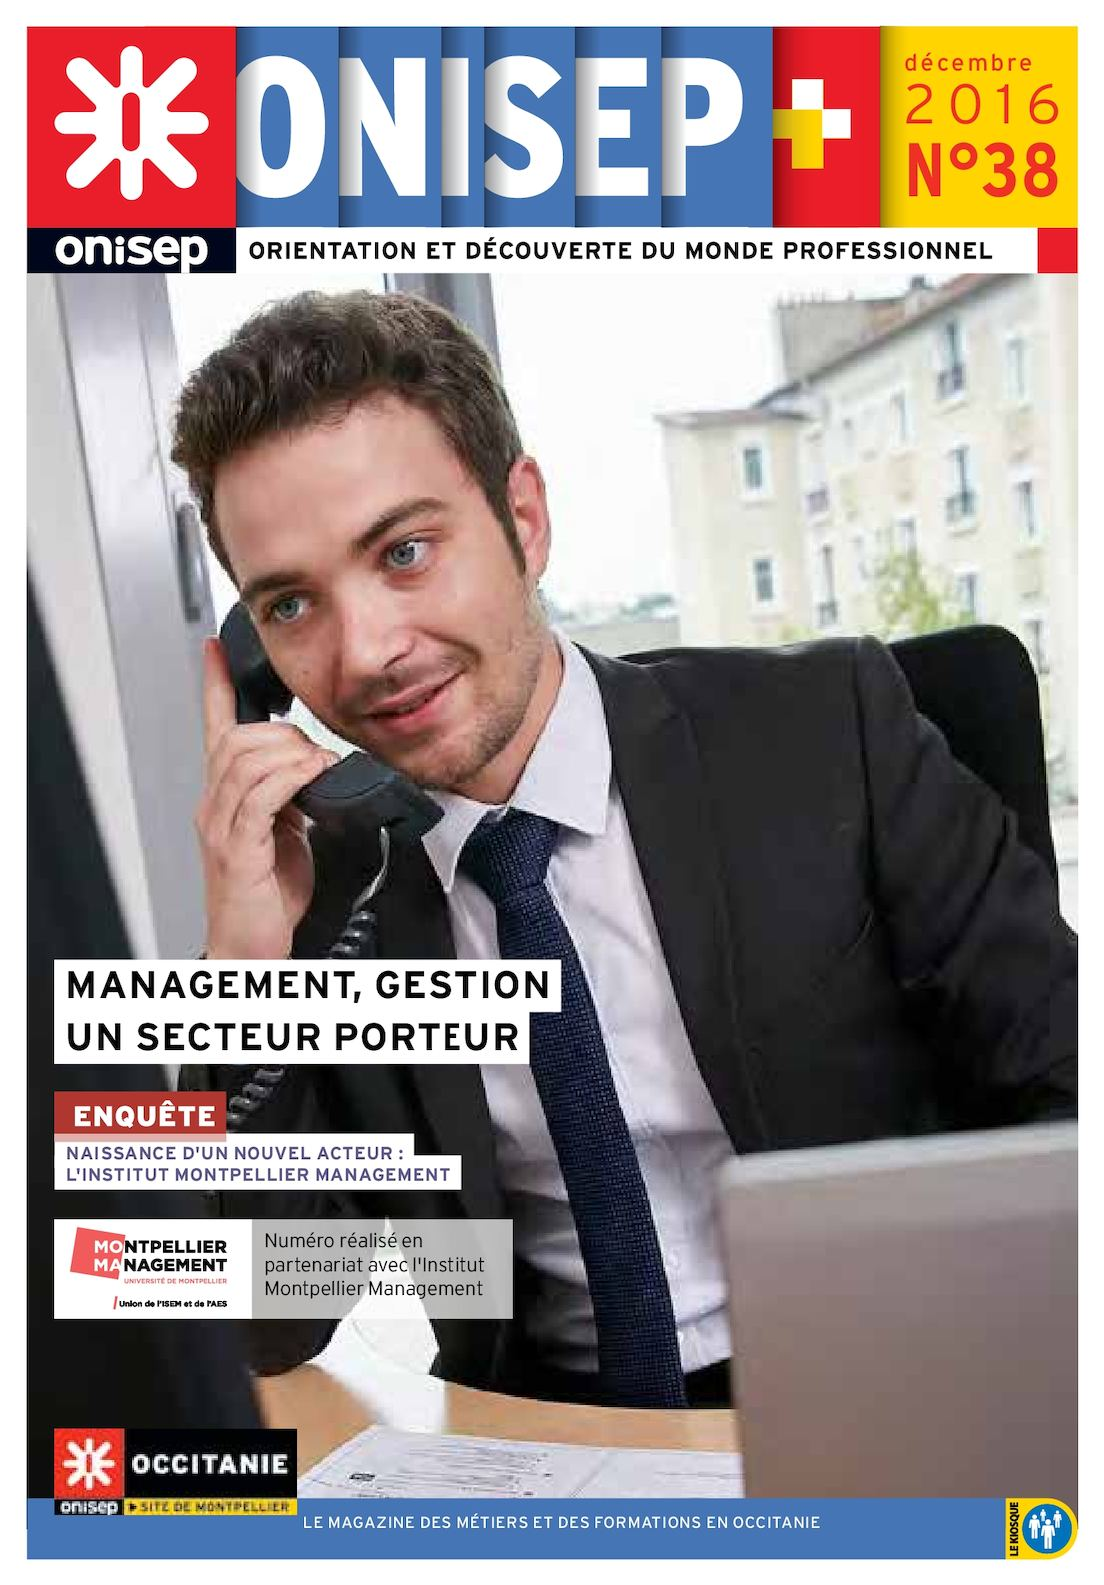 Onisep+ 38 Management Gestion